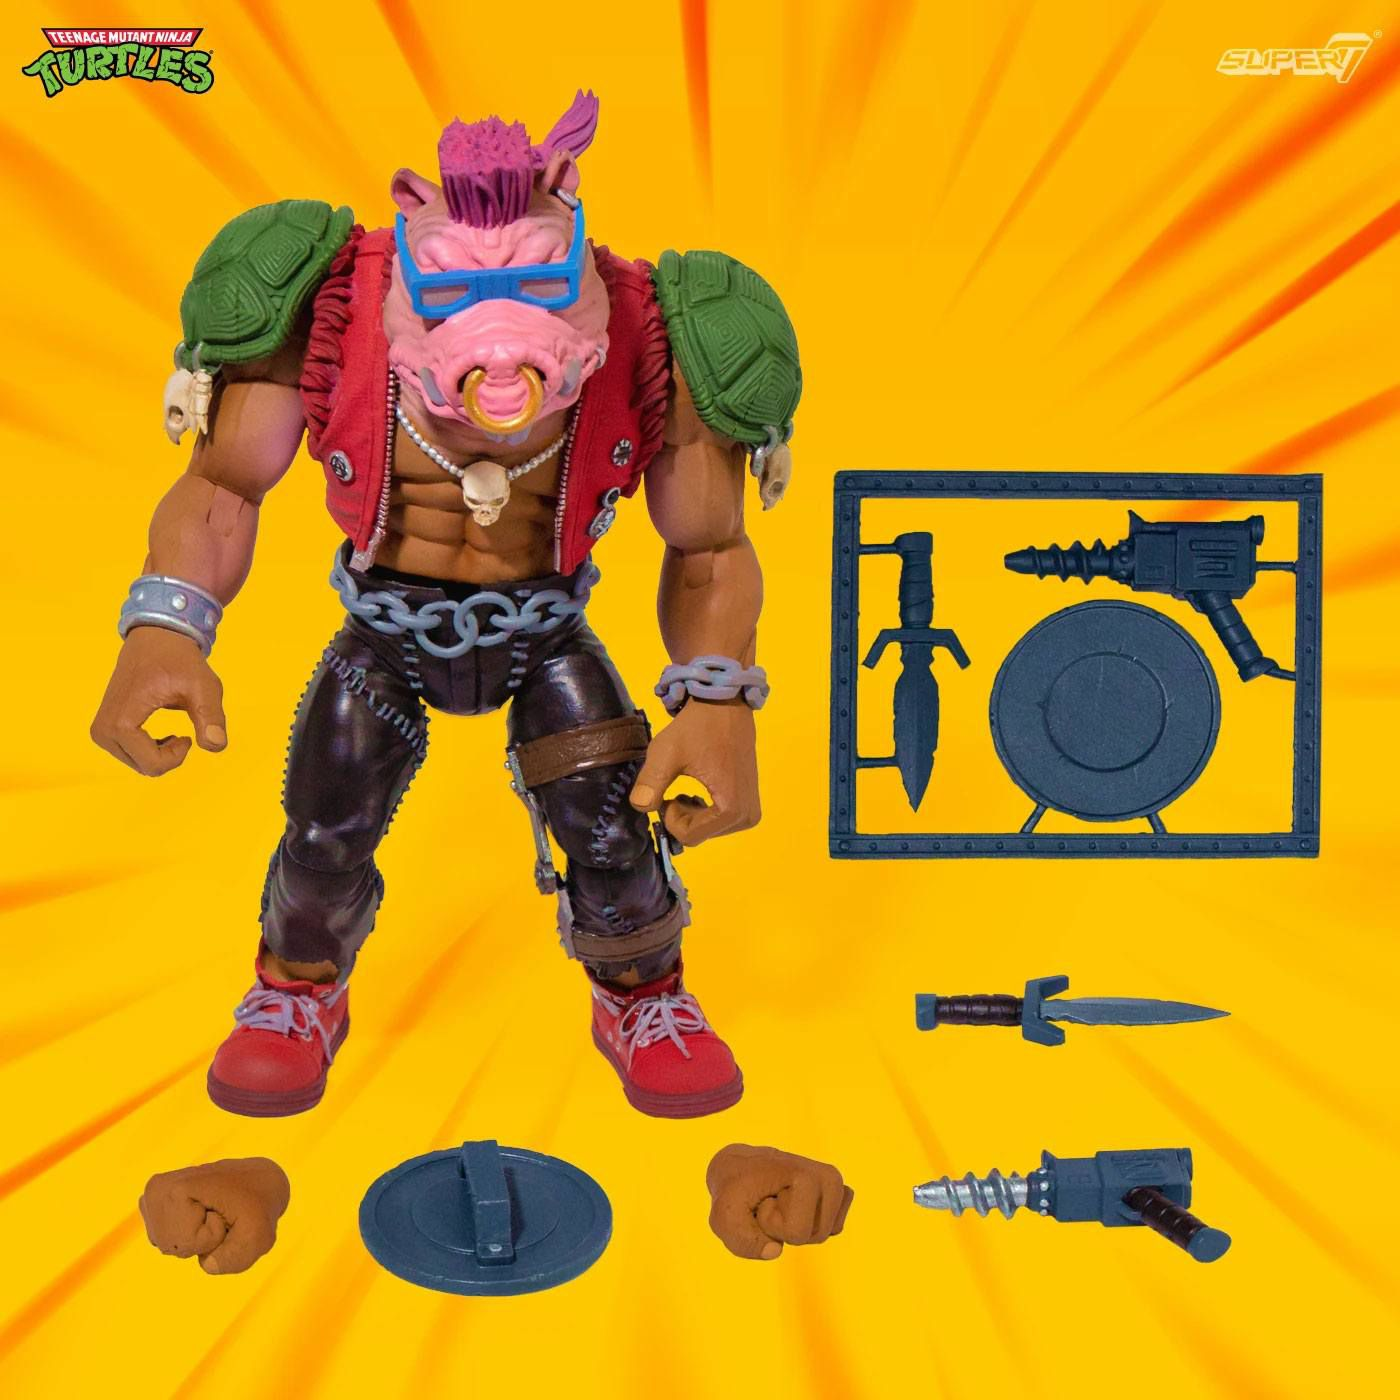 TMNT Tortues Ninja - Super7 Ultimates Figures - Bebop